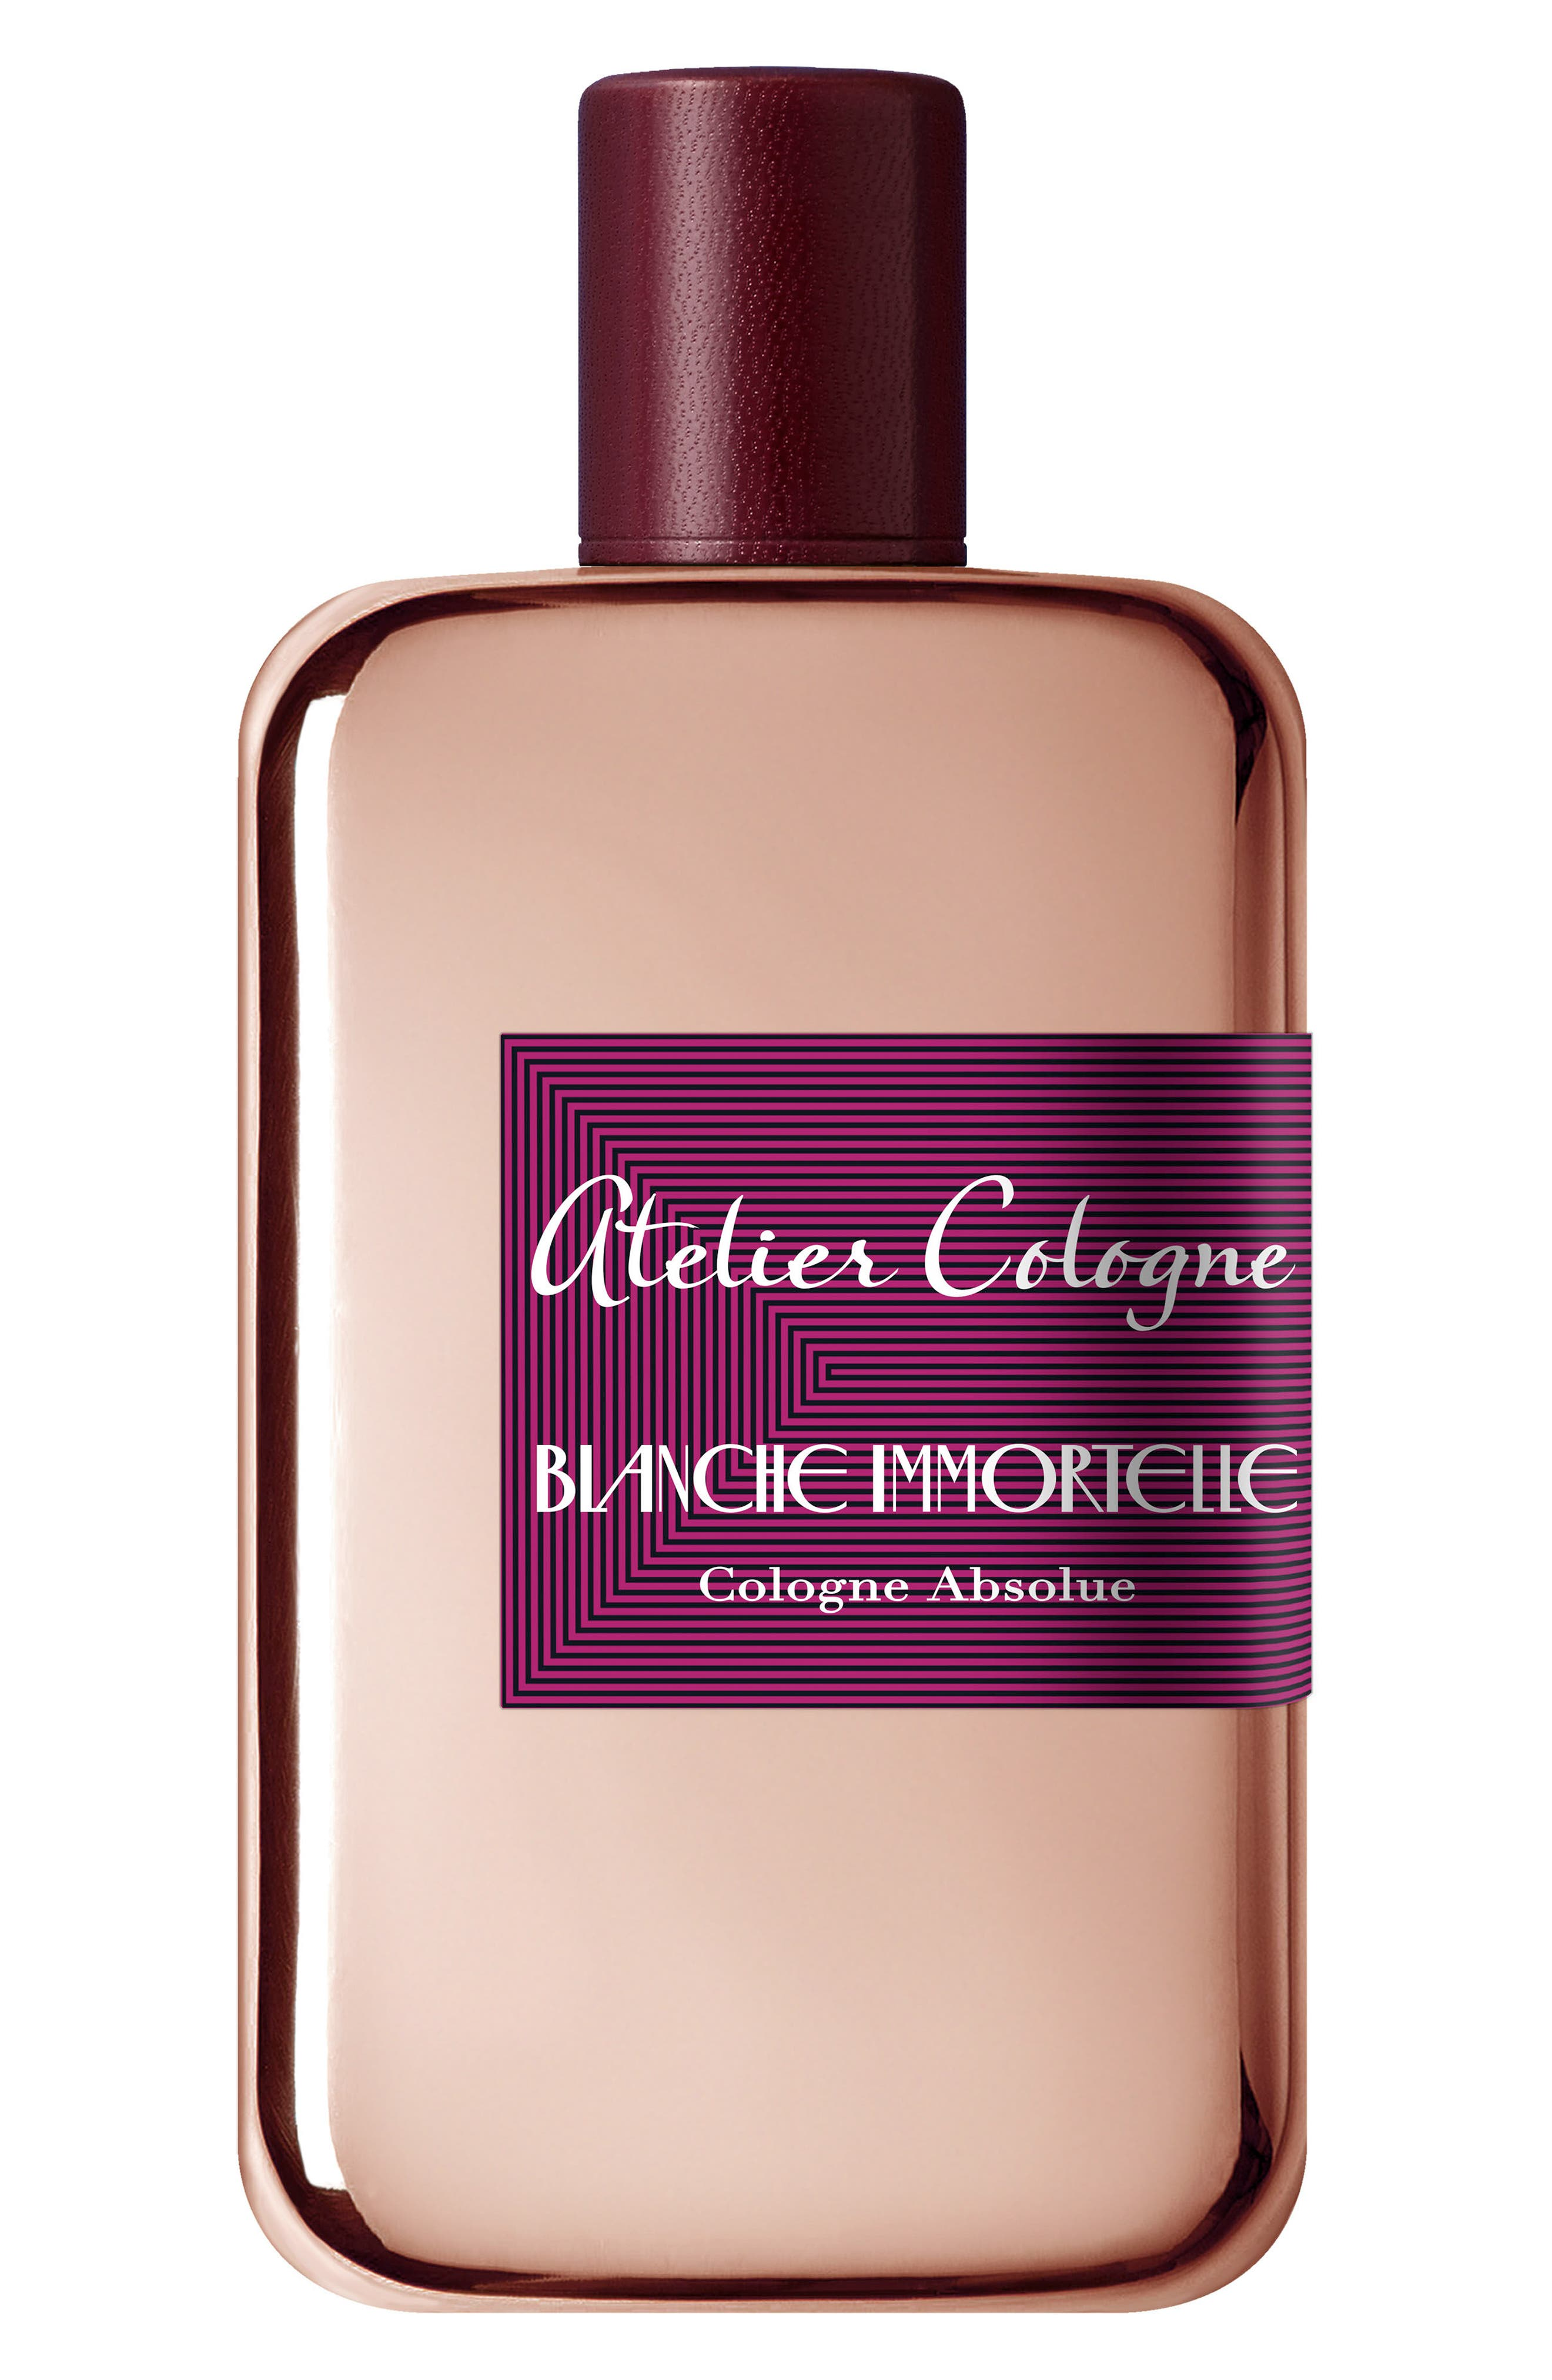 Blanche Immortelle Cologne Absolue,                             Main thumbnail 1, color,                             No Color